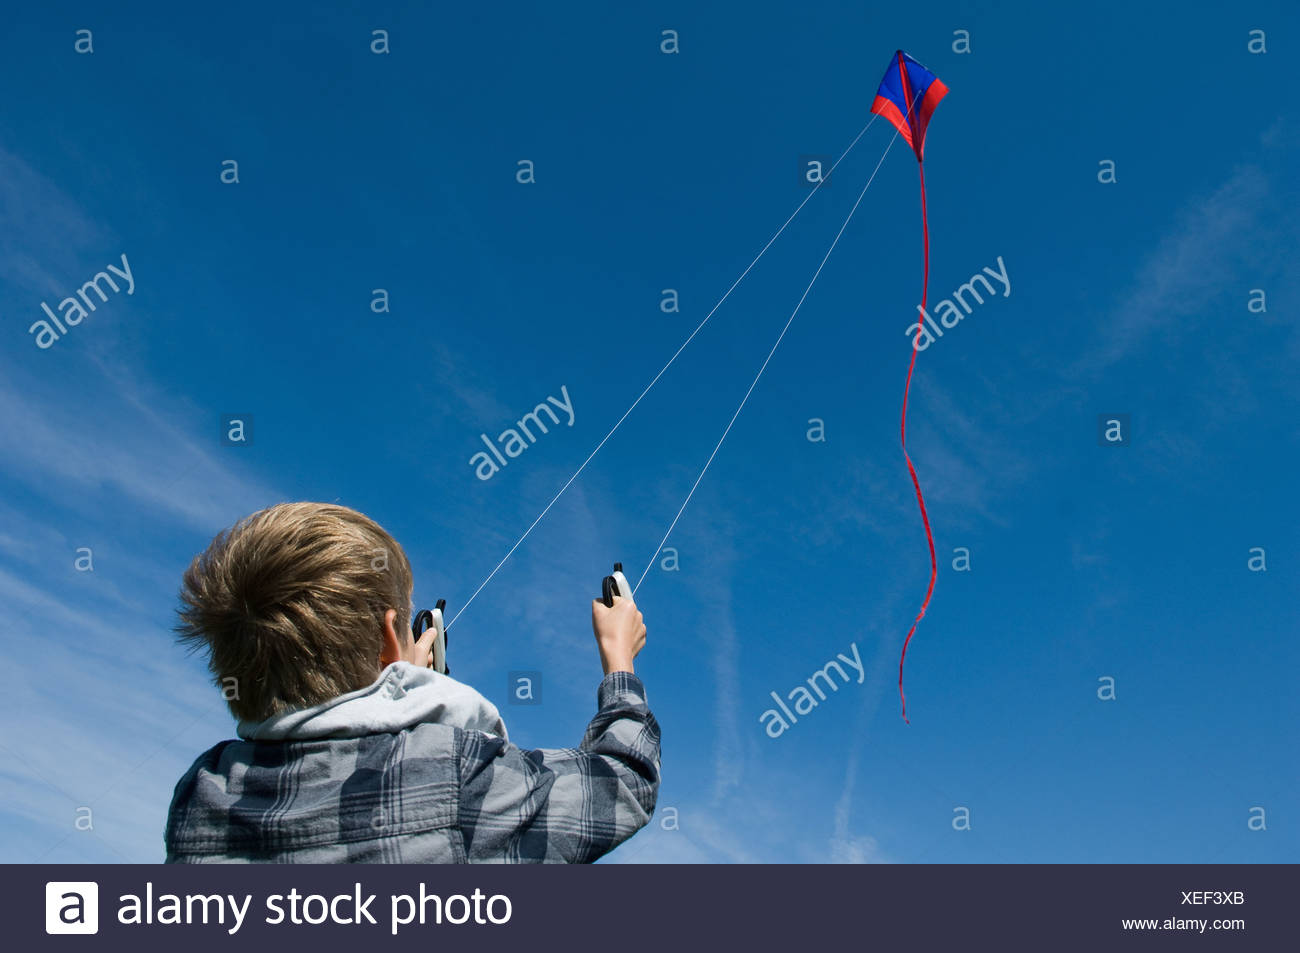 Boy flying a kite - Stock Image